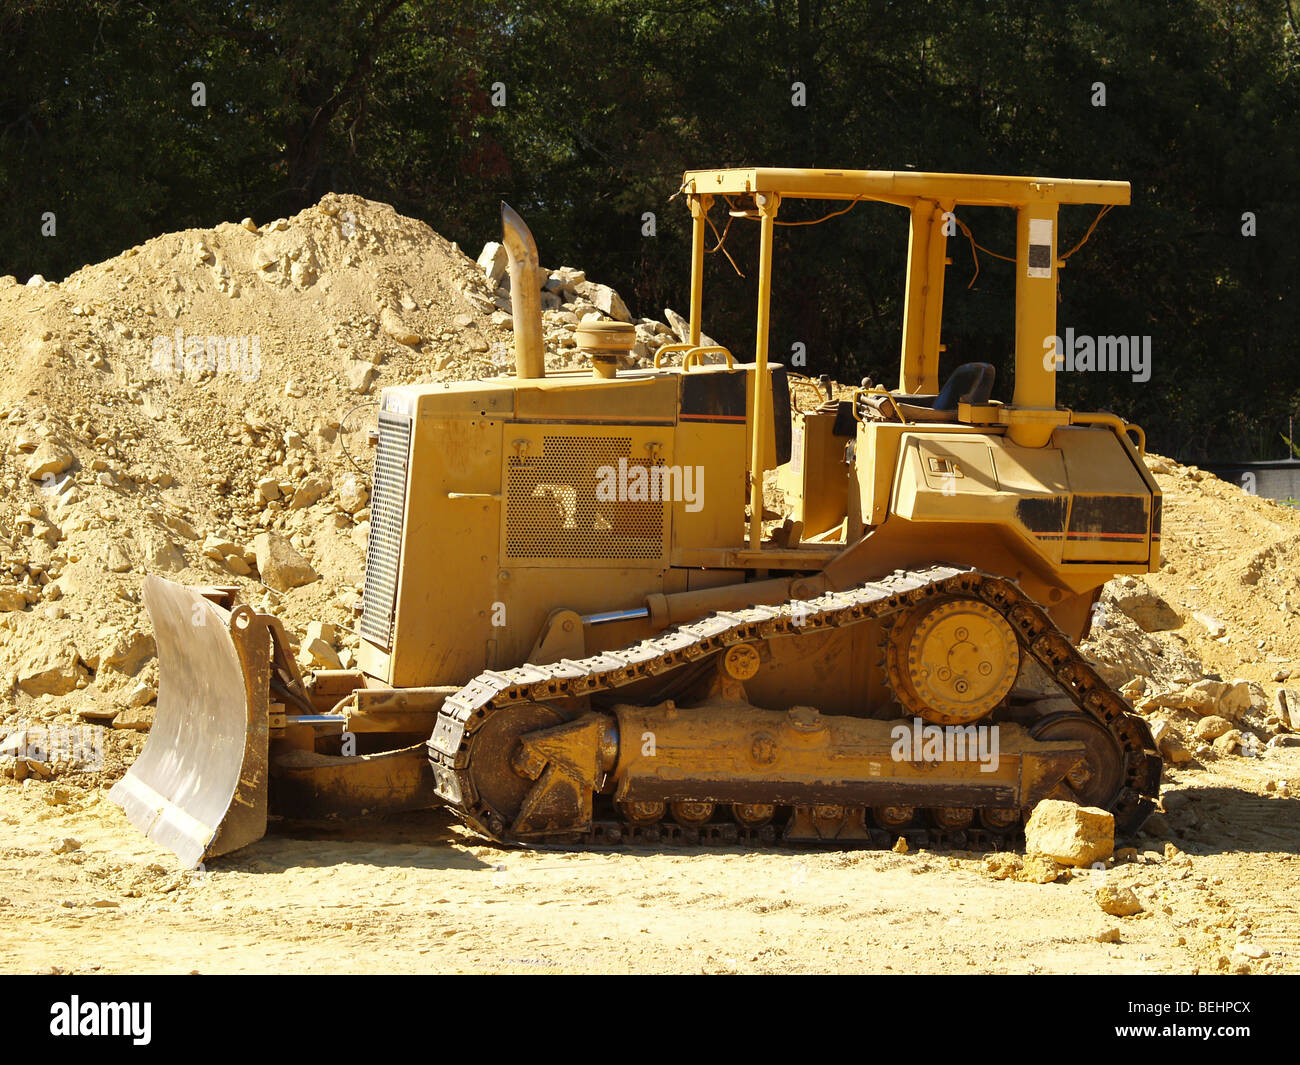 A heavy equipment earth moving bulldozer on a dusty commercial construction site. - Stock Image